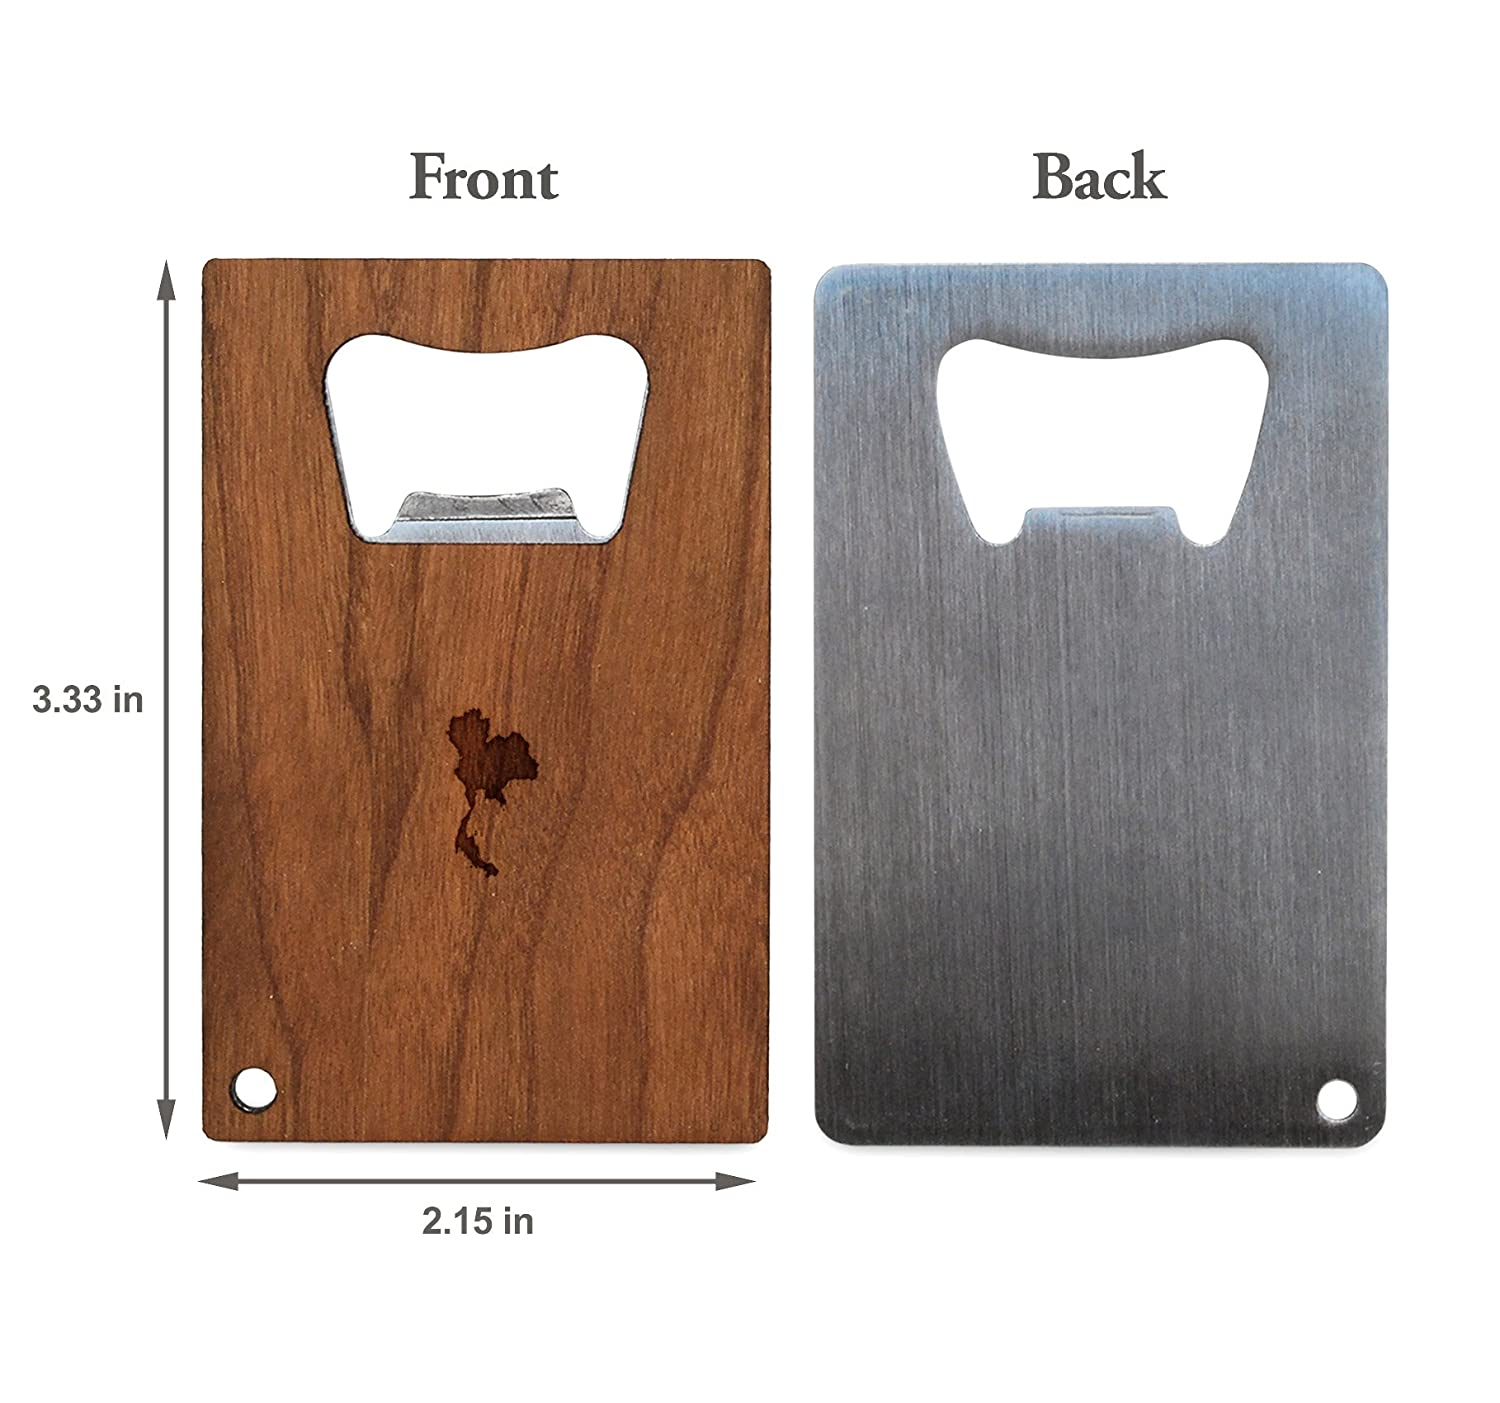 Amazon com: WOODEN ACCESSORIES COMPANY Credit Card Sized